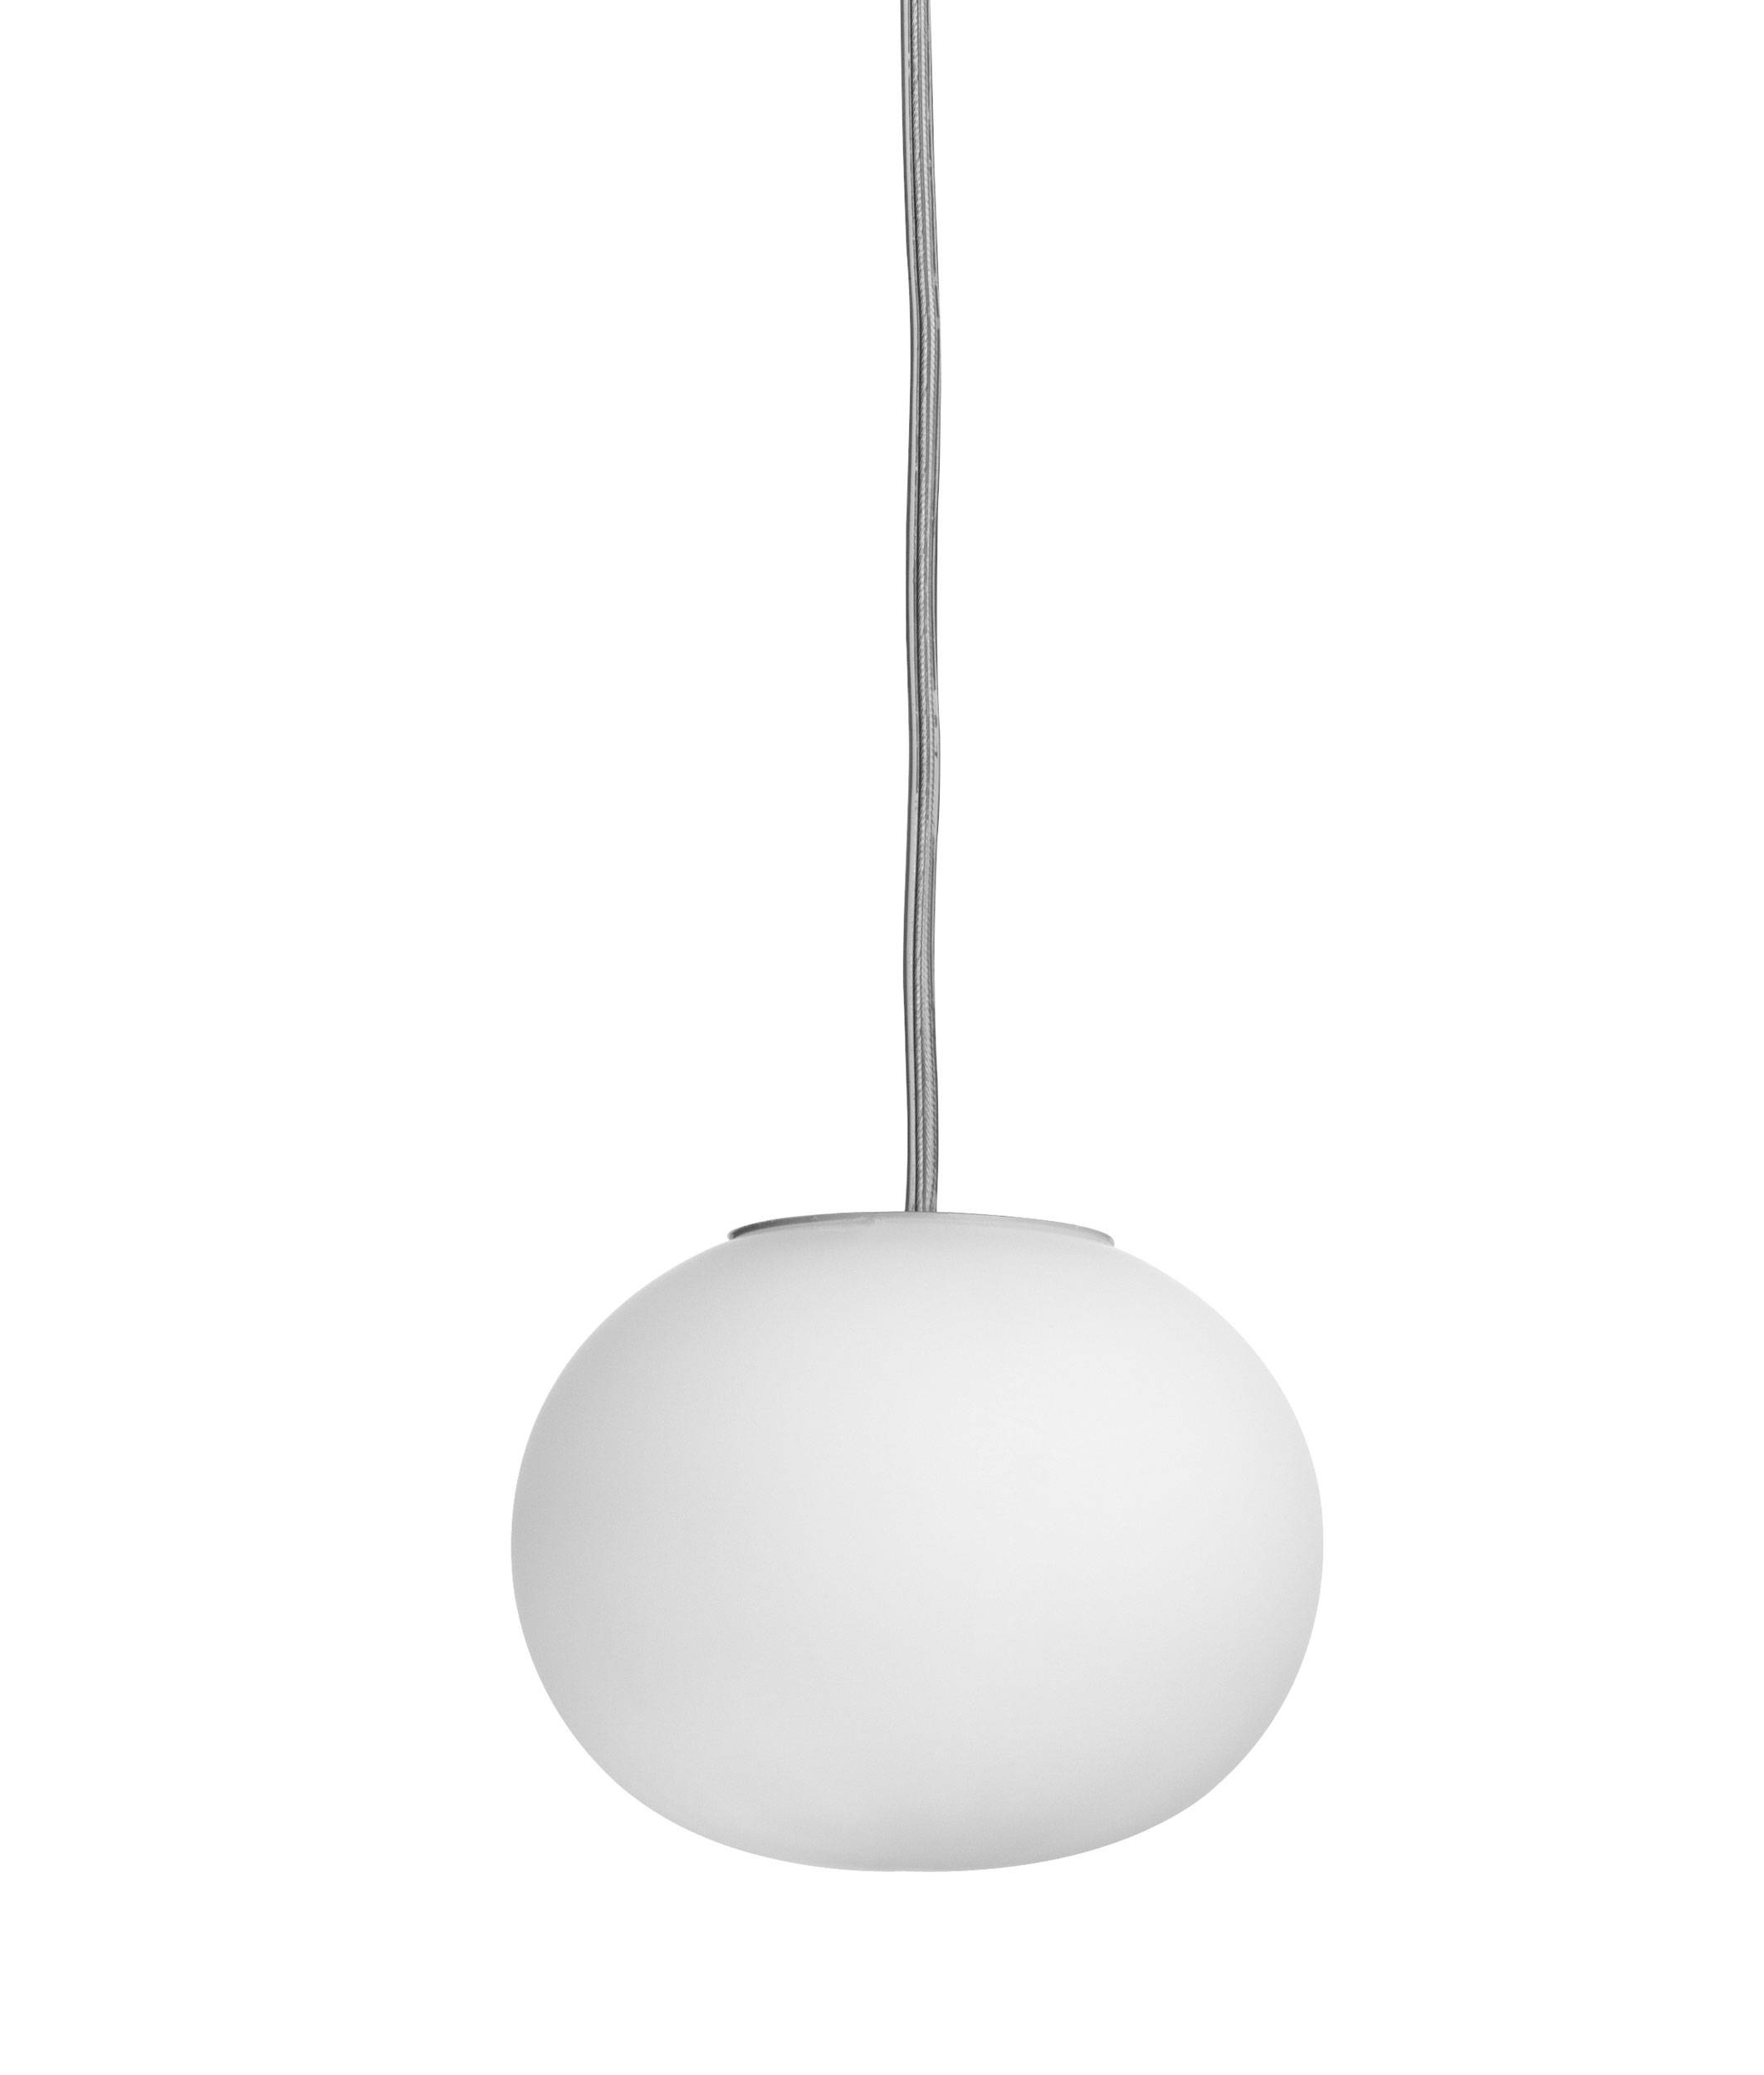 Ceiling Pendant Light Fixtures & Fittings | Lighting Styles throughout Glass Ball Pendant Lights Uk (Image 6 of 15)